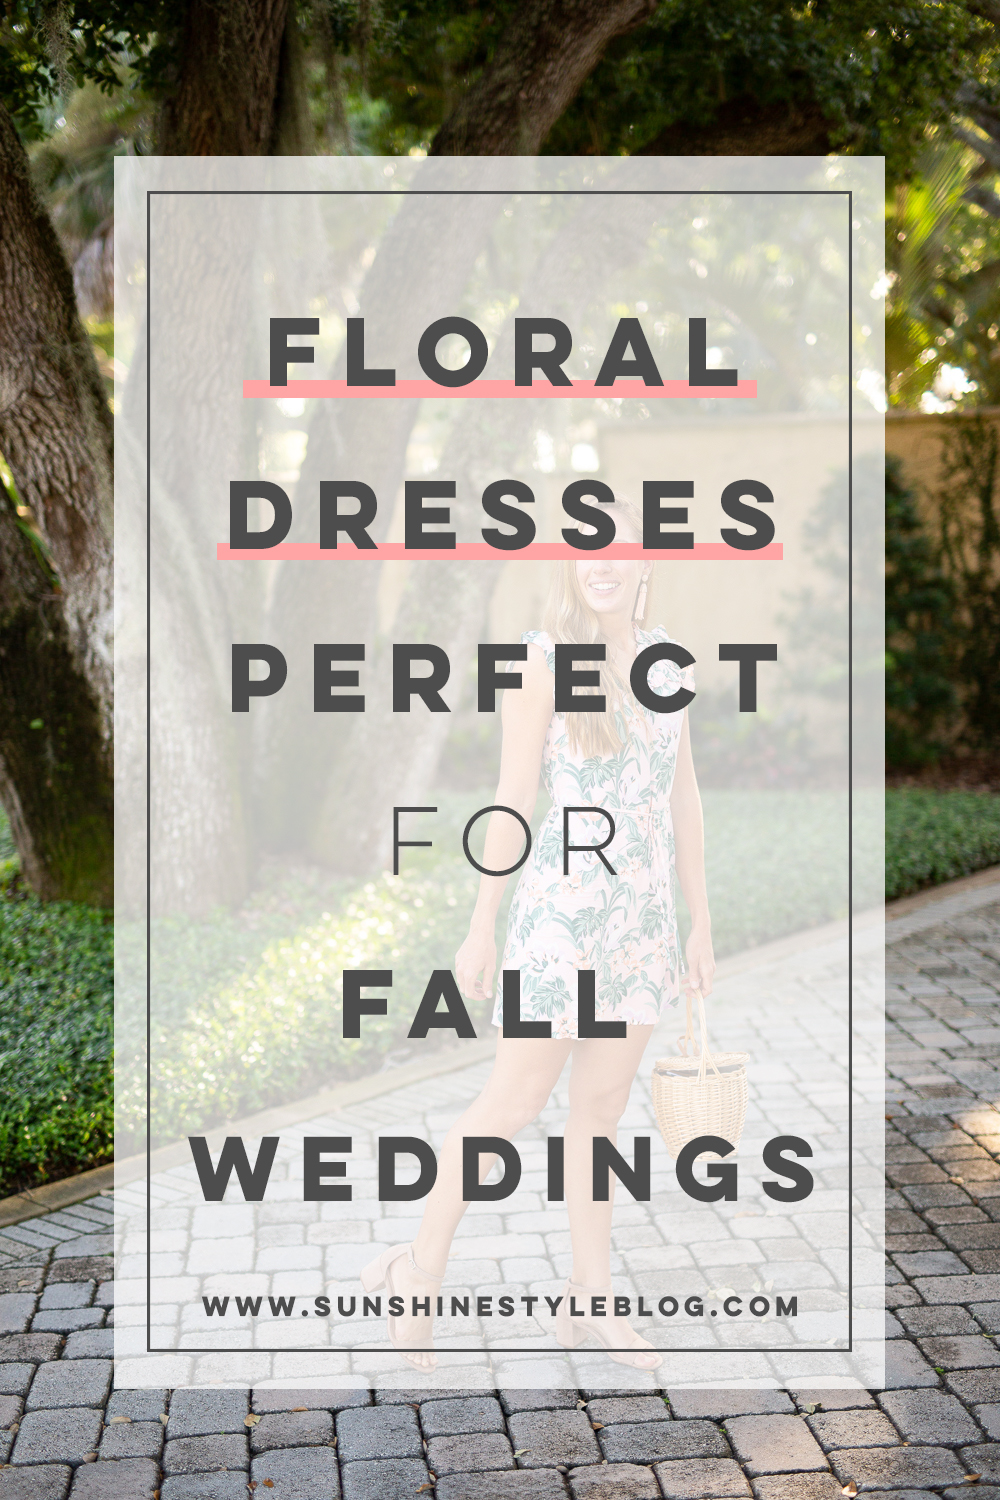 Floral Dresses Perfect for Fall Weddings | Sunshine Style